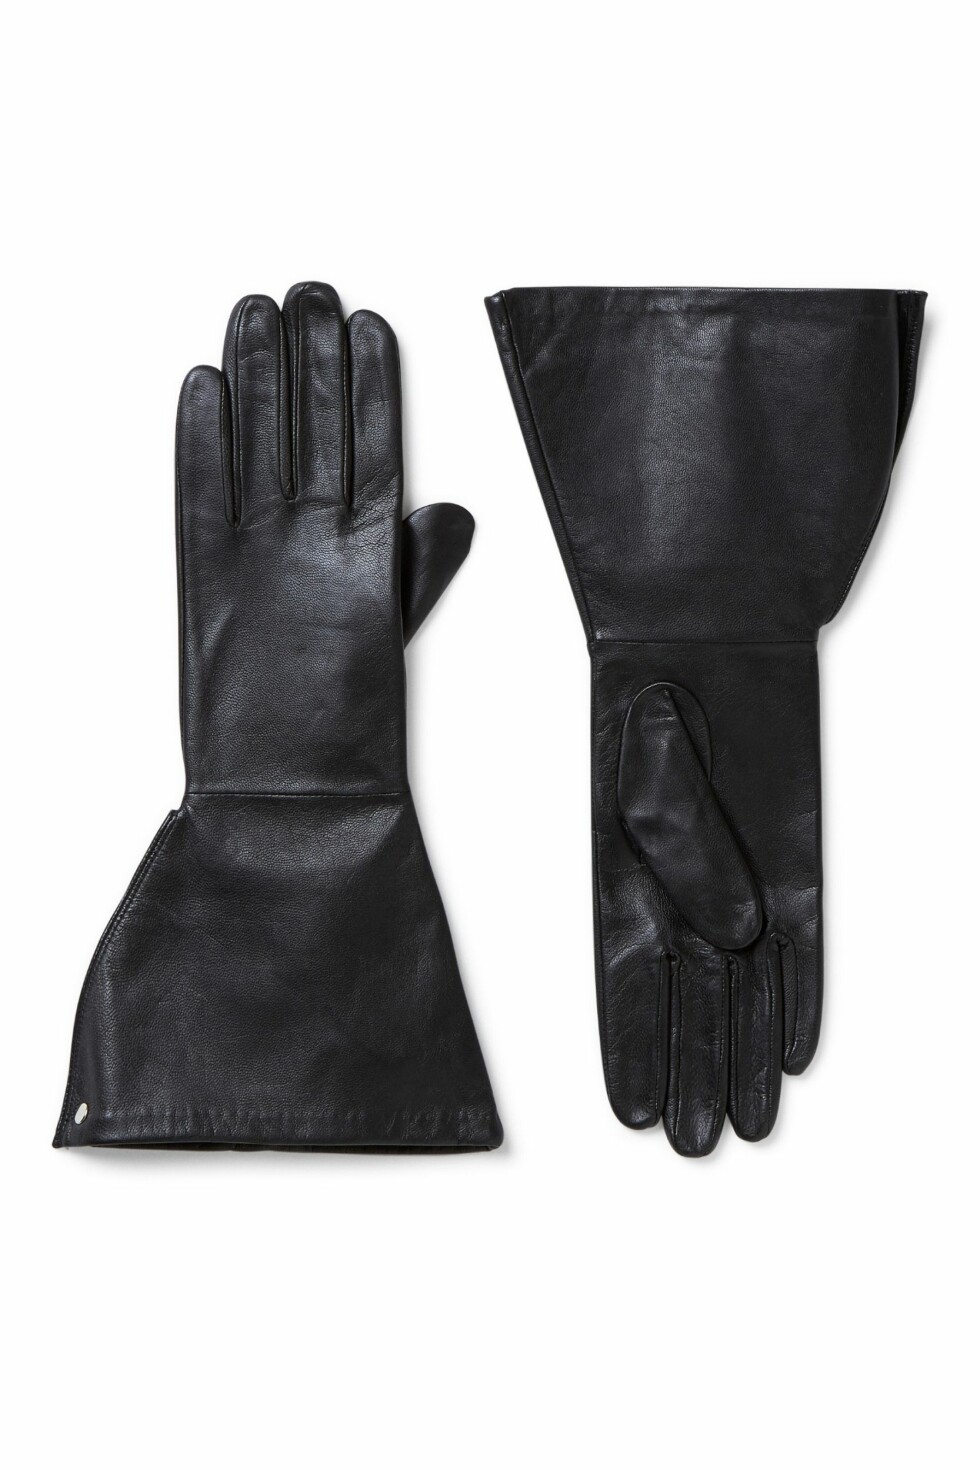 Skinnhansker fra Weekday | kr 400 | http://shop.weekday.com/se/Womens_shop/Accessories/All/Whiz_Leather_Gloves/5131354-8469505.1#c-47958